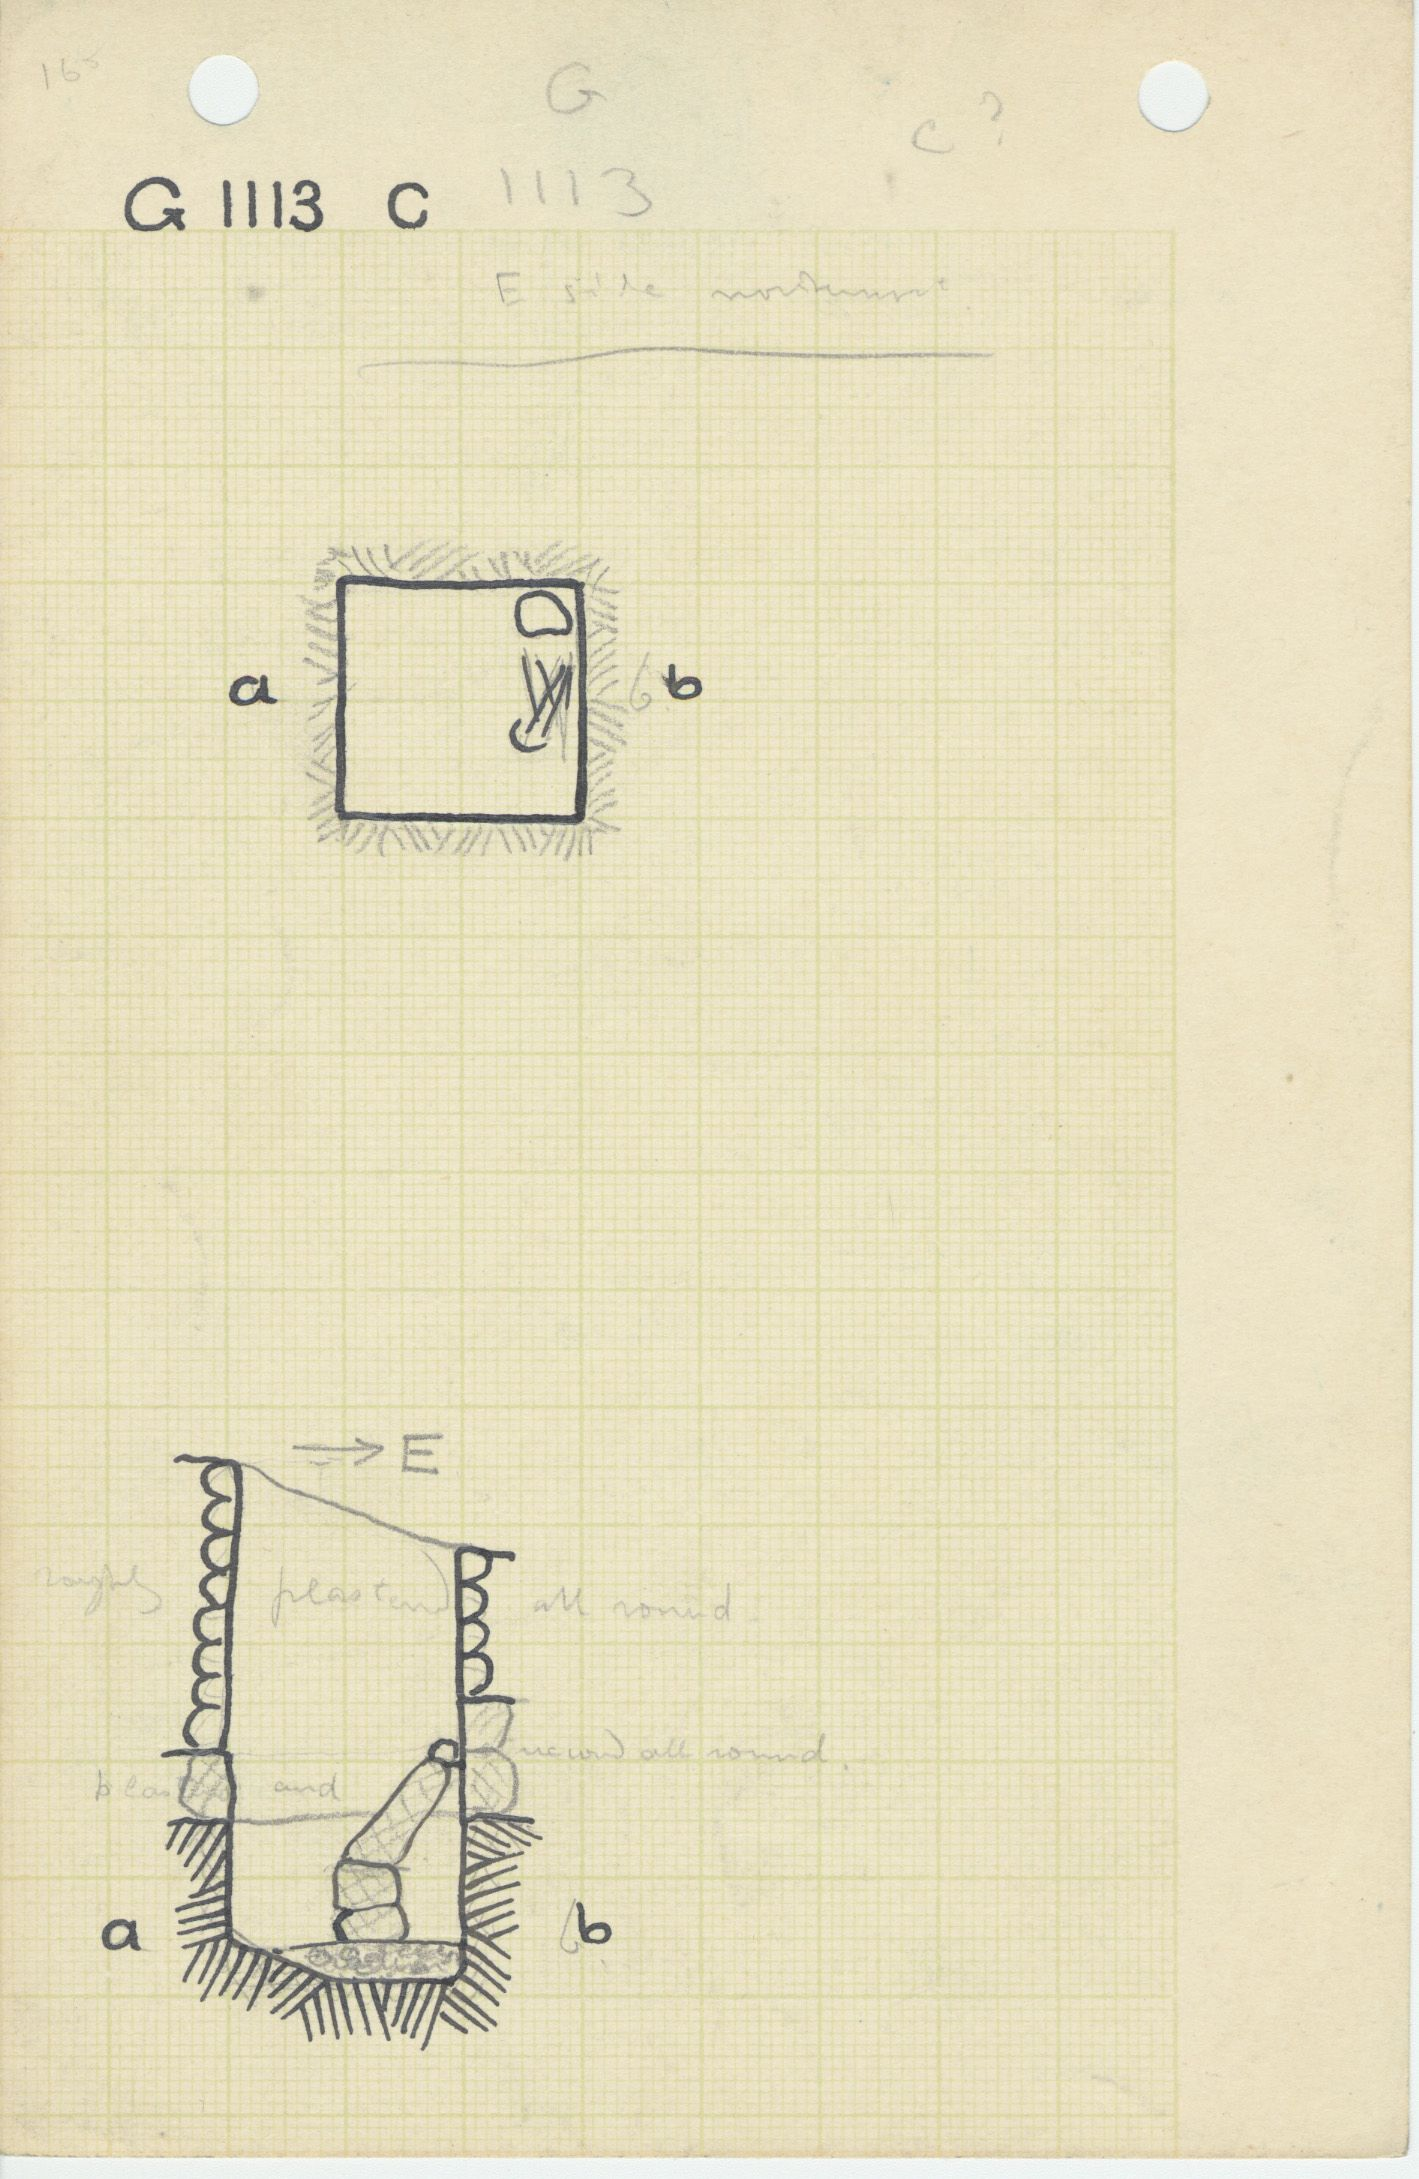 Maps and plans: G 1112+1113: G 1113, Shaft C